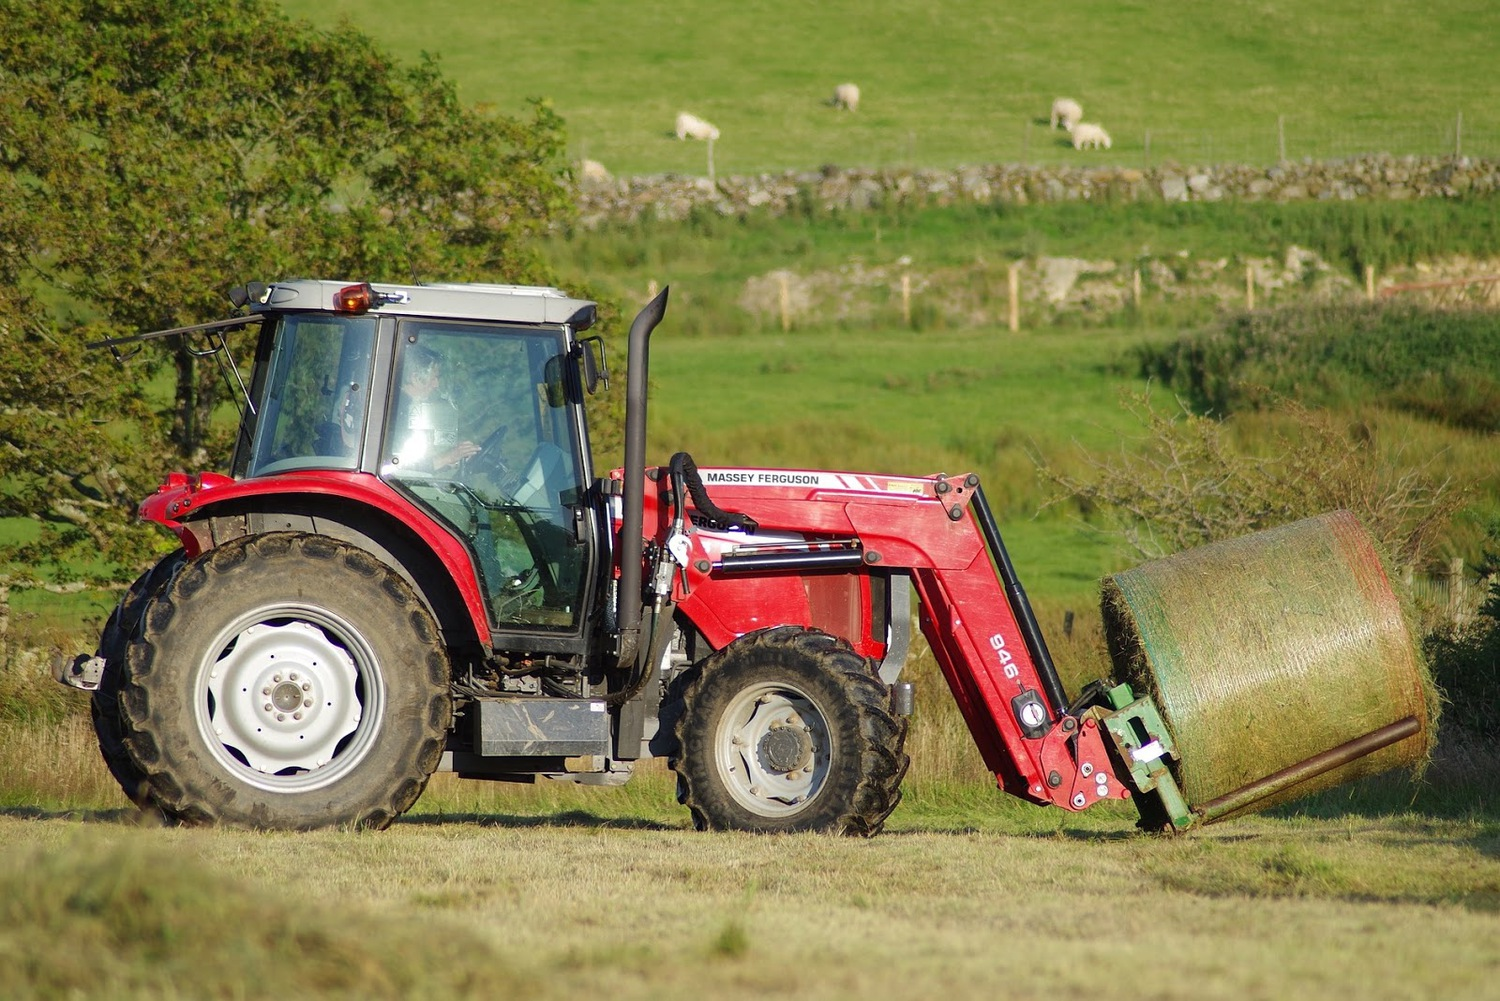 Choosing Essential Equipment For Your Small Farm Business